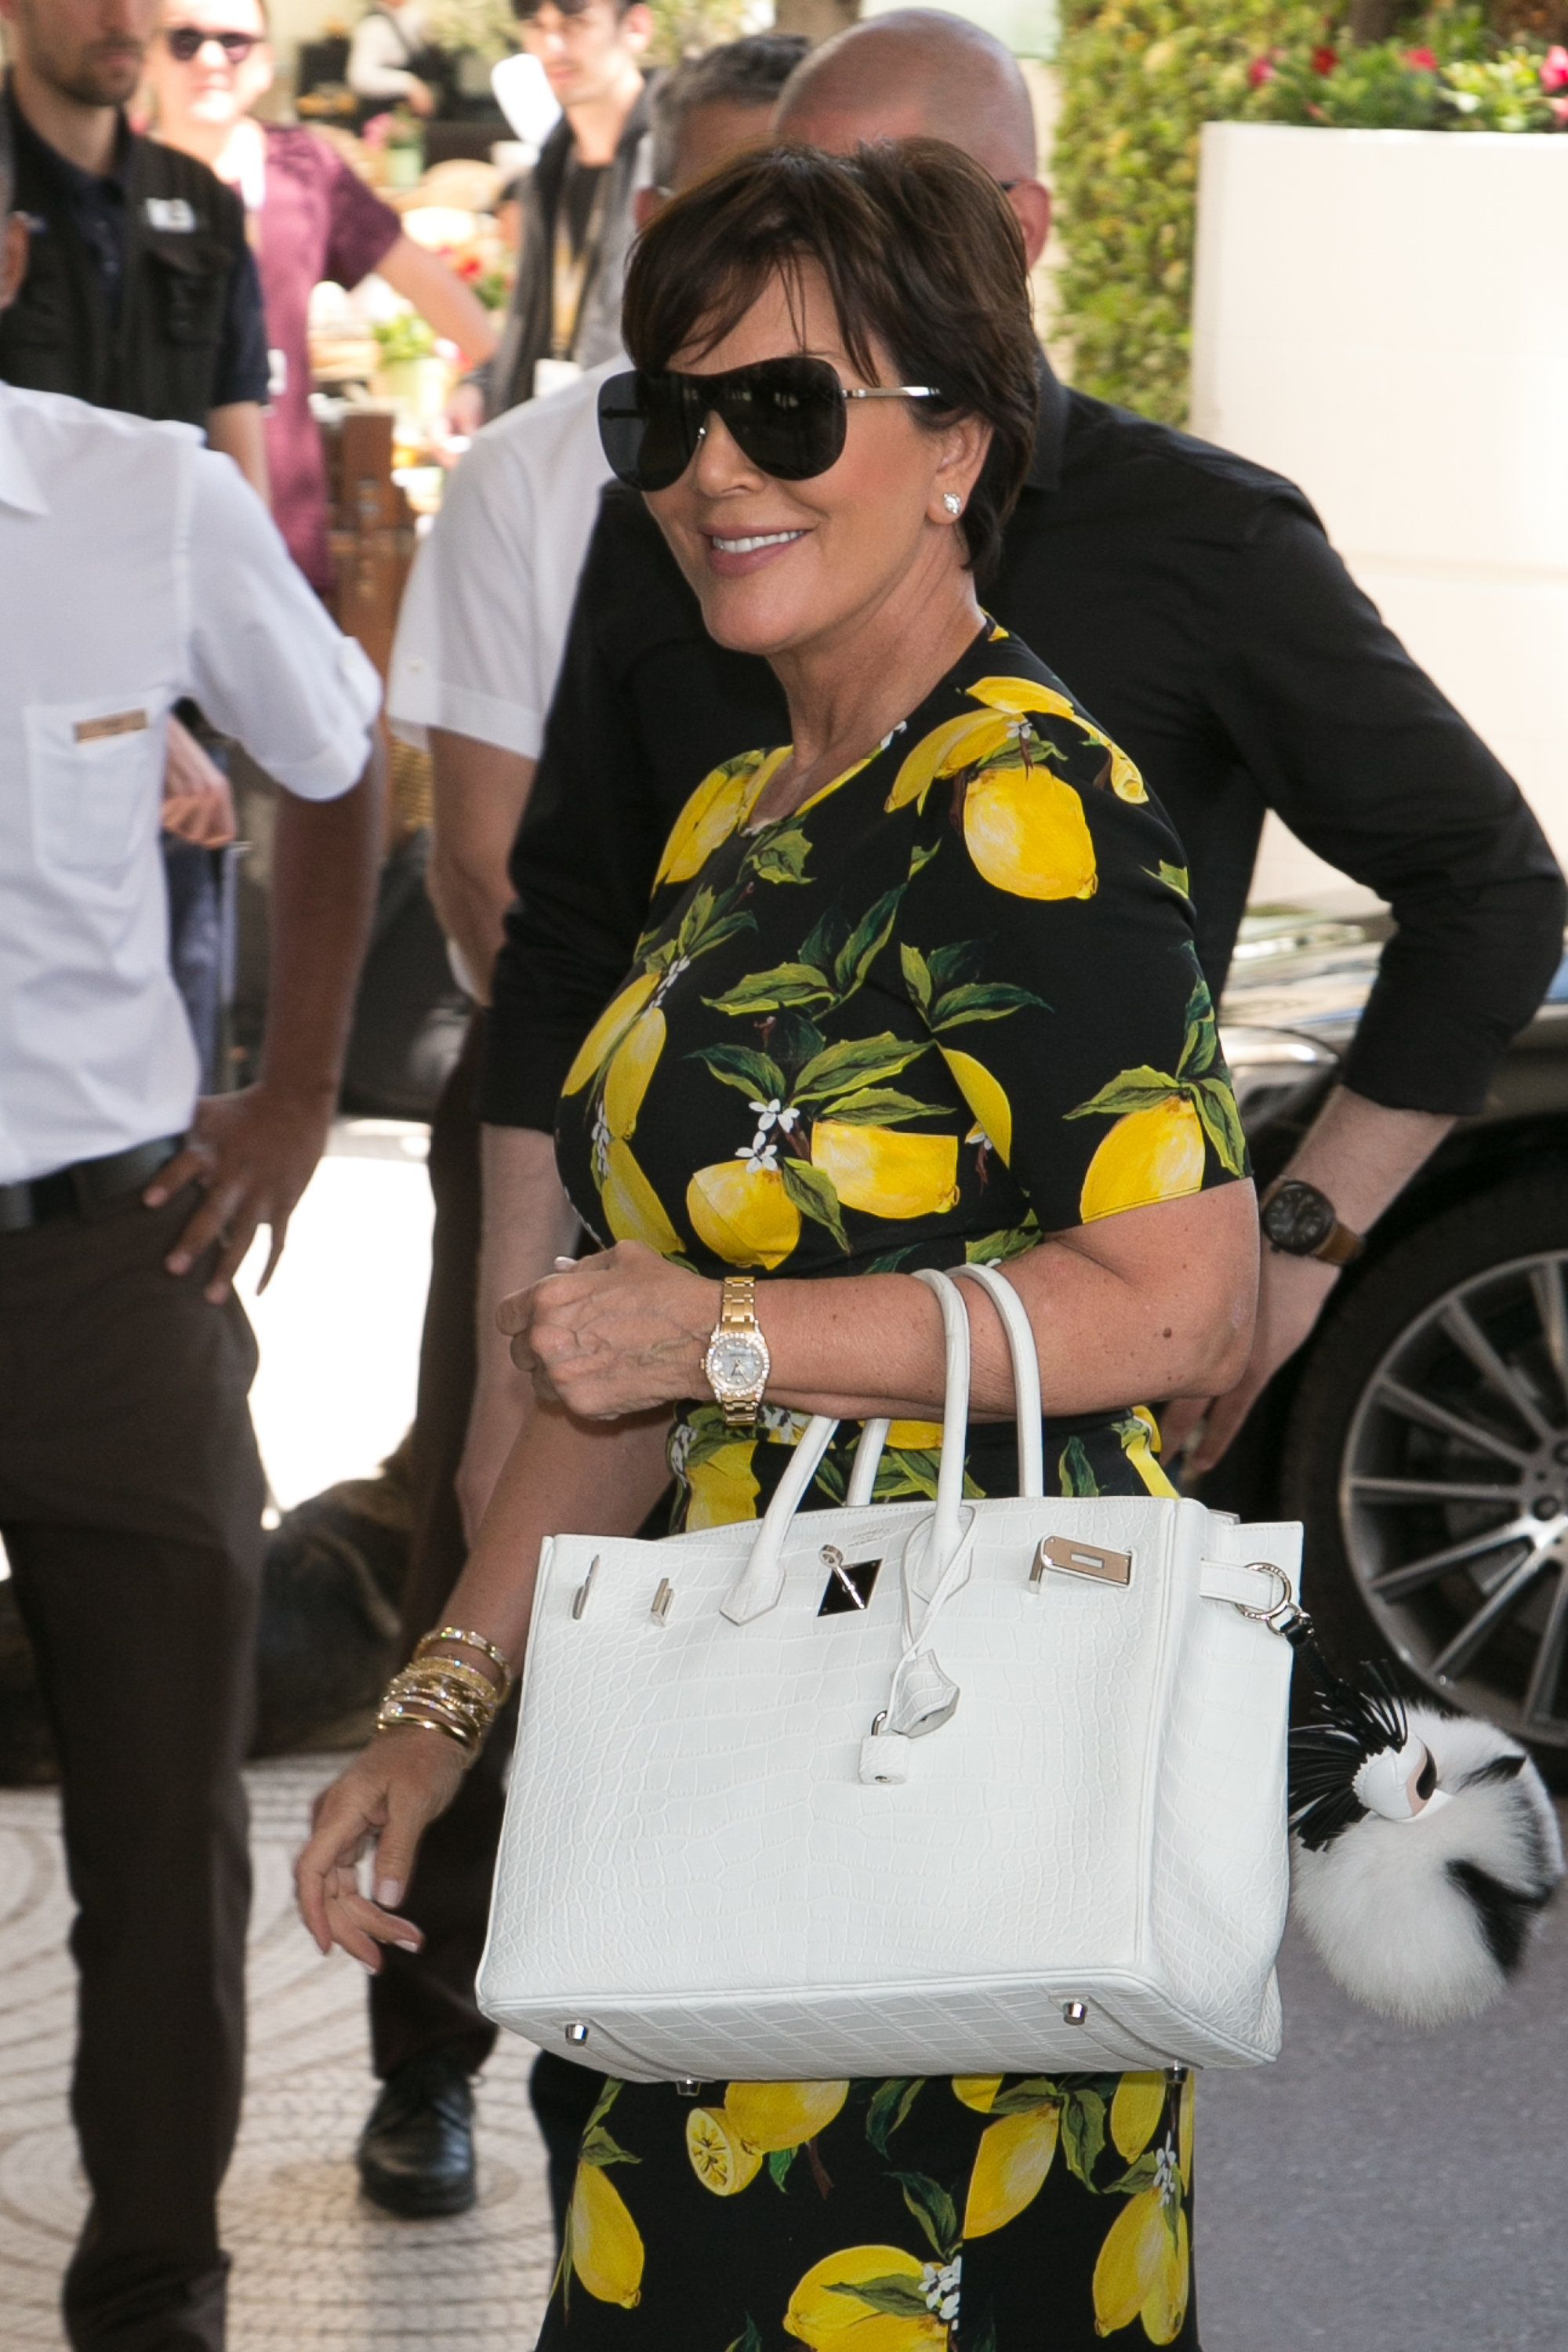 CANNES, FRANCE - MAY 17:  Kris Jenner arrives at the 'Grand Hyatt Martinez Hotel' during the annual 69th Cannes Film Festival on May 17, 2016 in Cannes, France.  (Photo by Marc Piasecki/GC Images)